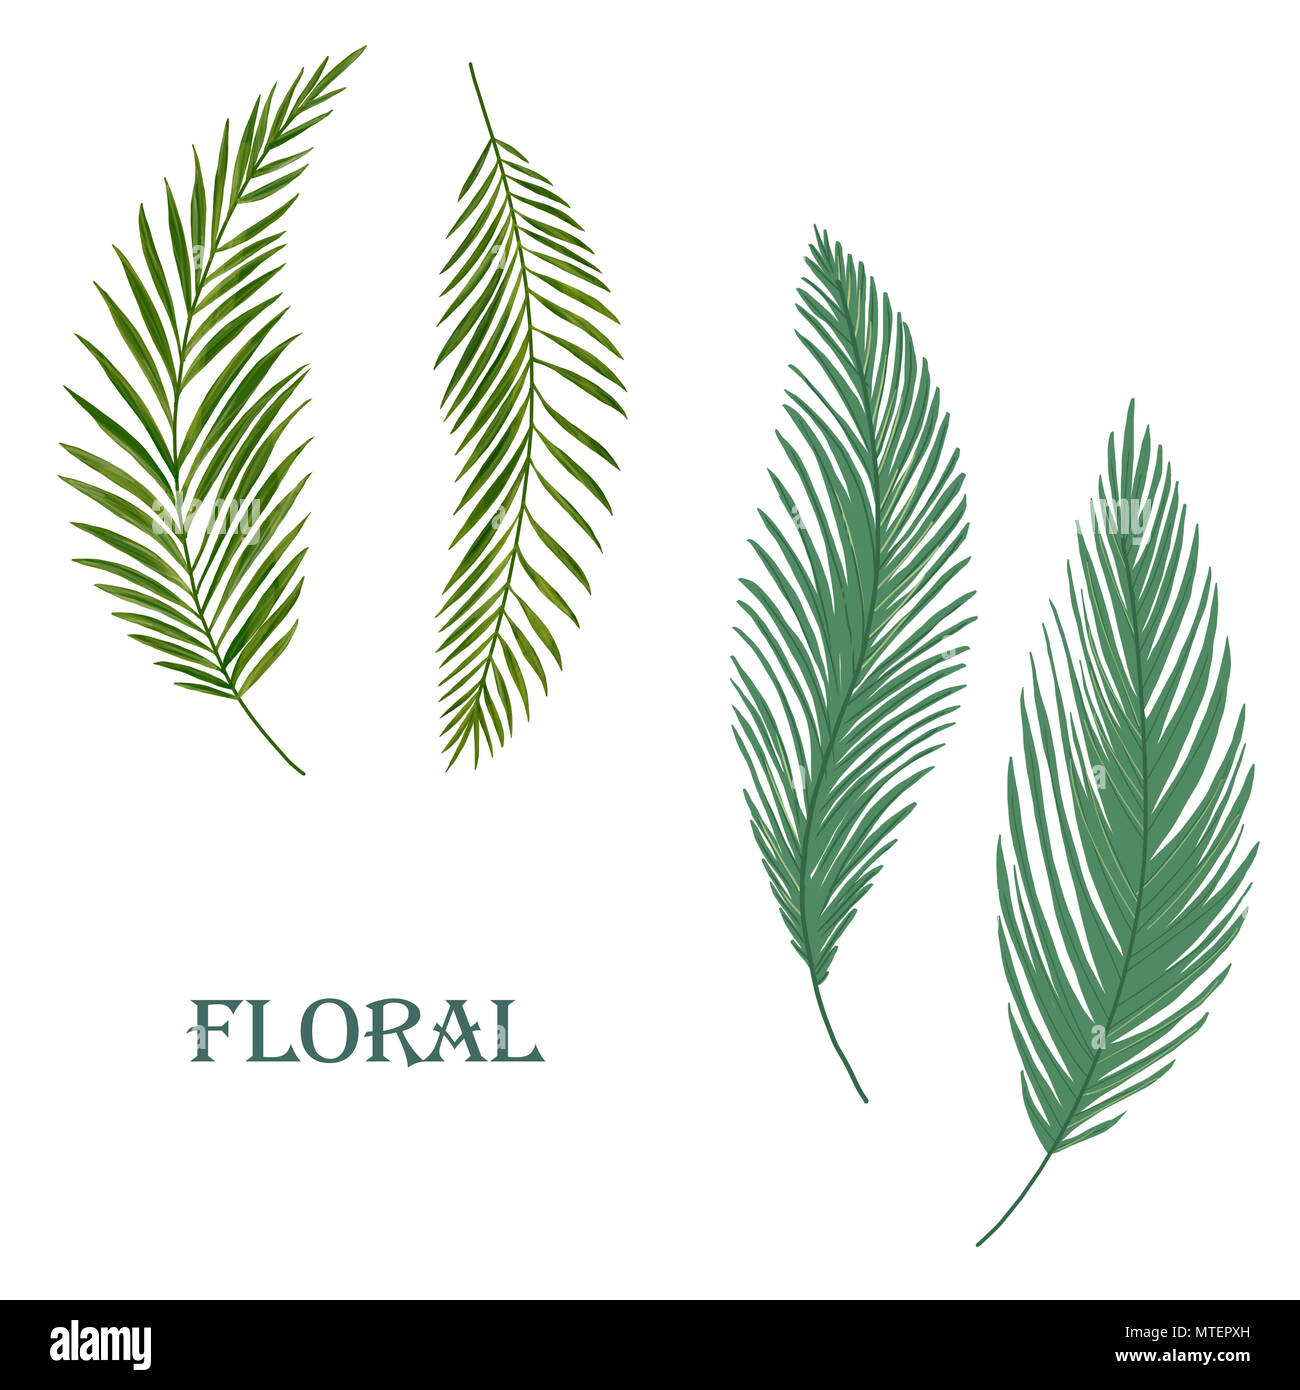 Tropical floral clip art foglia digitale Immagini Stock